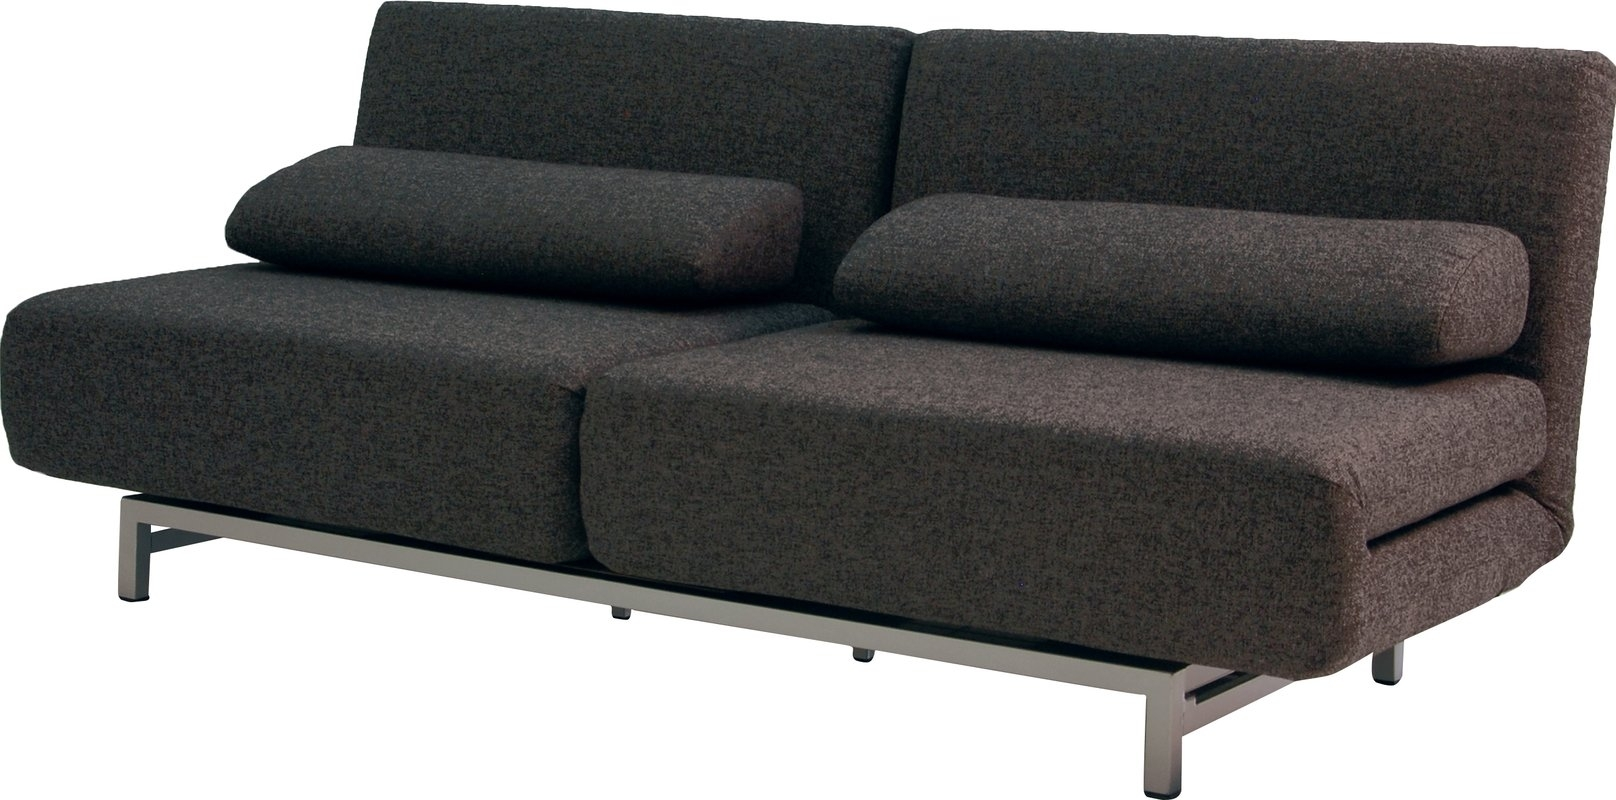 Mobital Iso Convertible Sofa & Reviews | Wayfair regarding Convertible Sofas (Image 5 of 10)